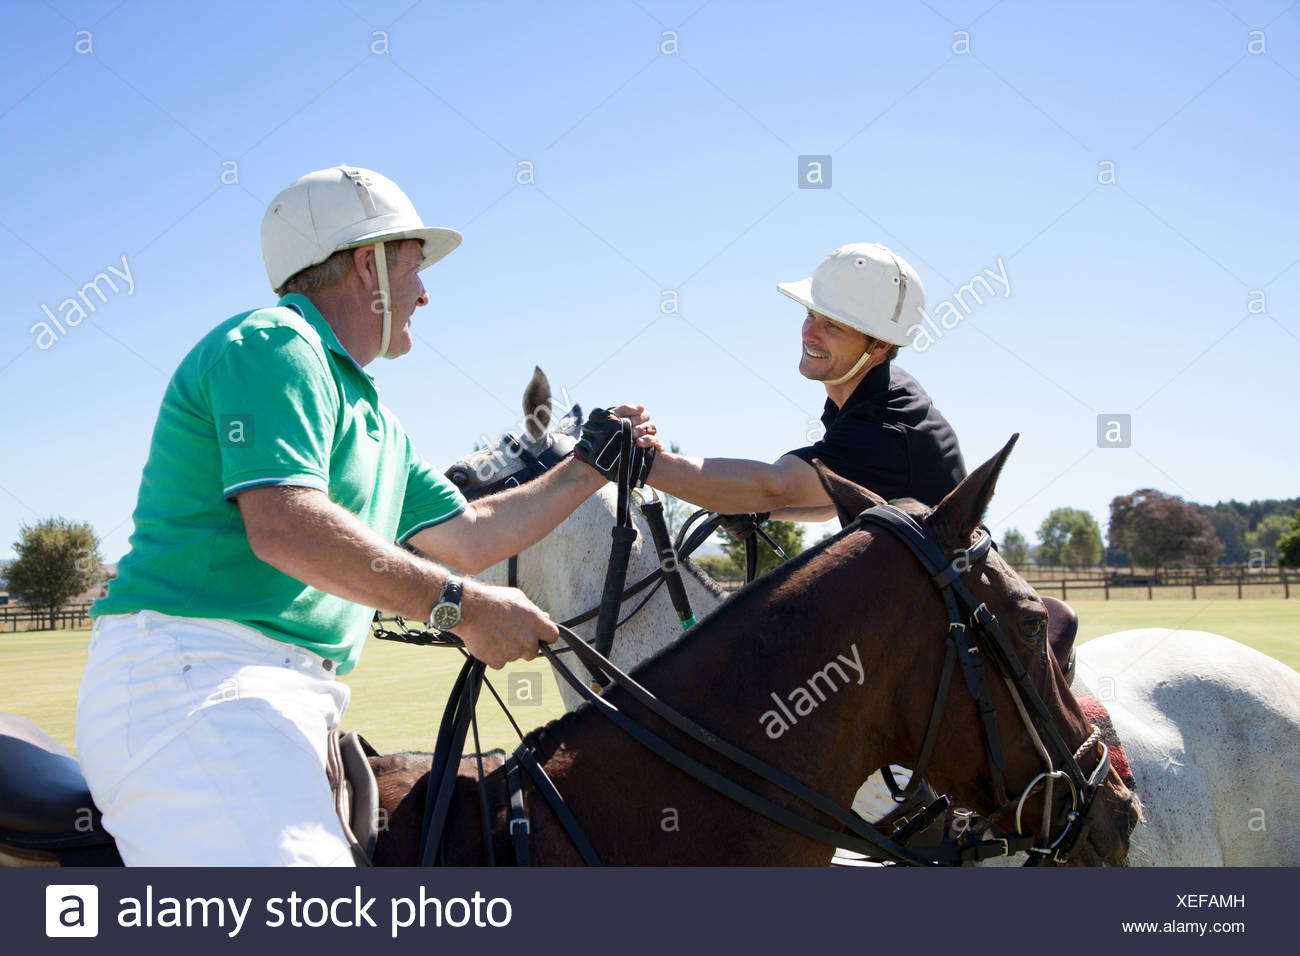 Two polo players shaking hands - Stock Image